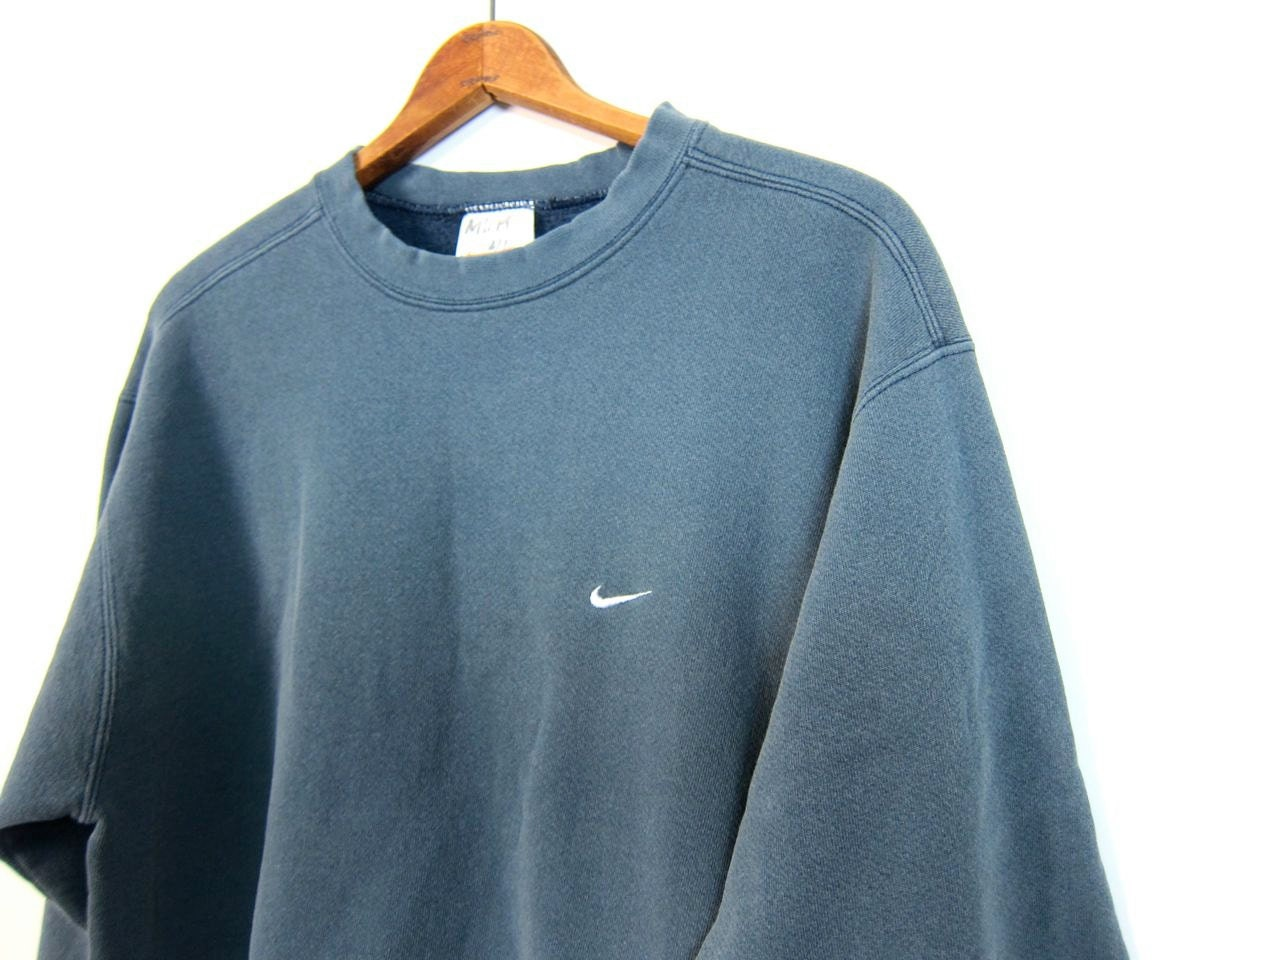 Faded Blue Nike Sweatshirt Washed Out Distressed Athletic